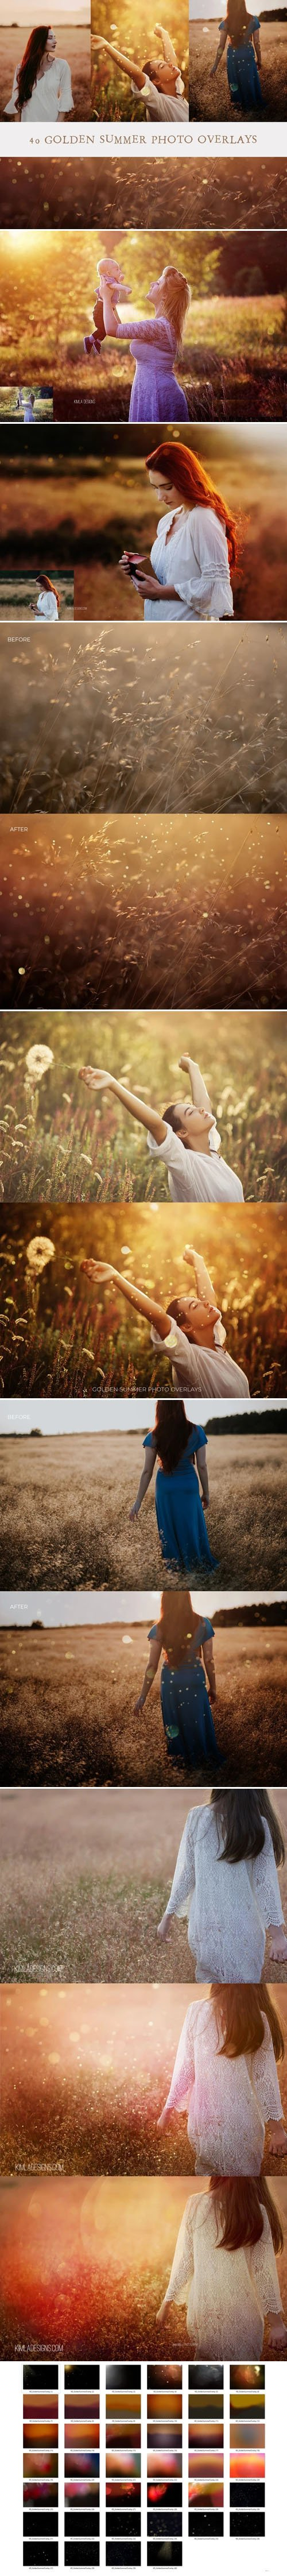 40 Golden Summer Photo Overlays Collection